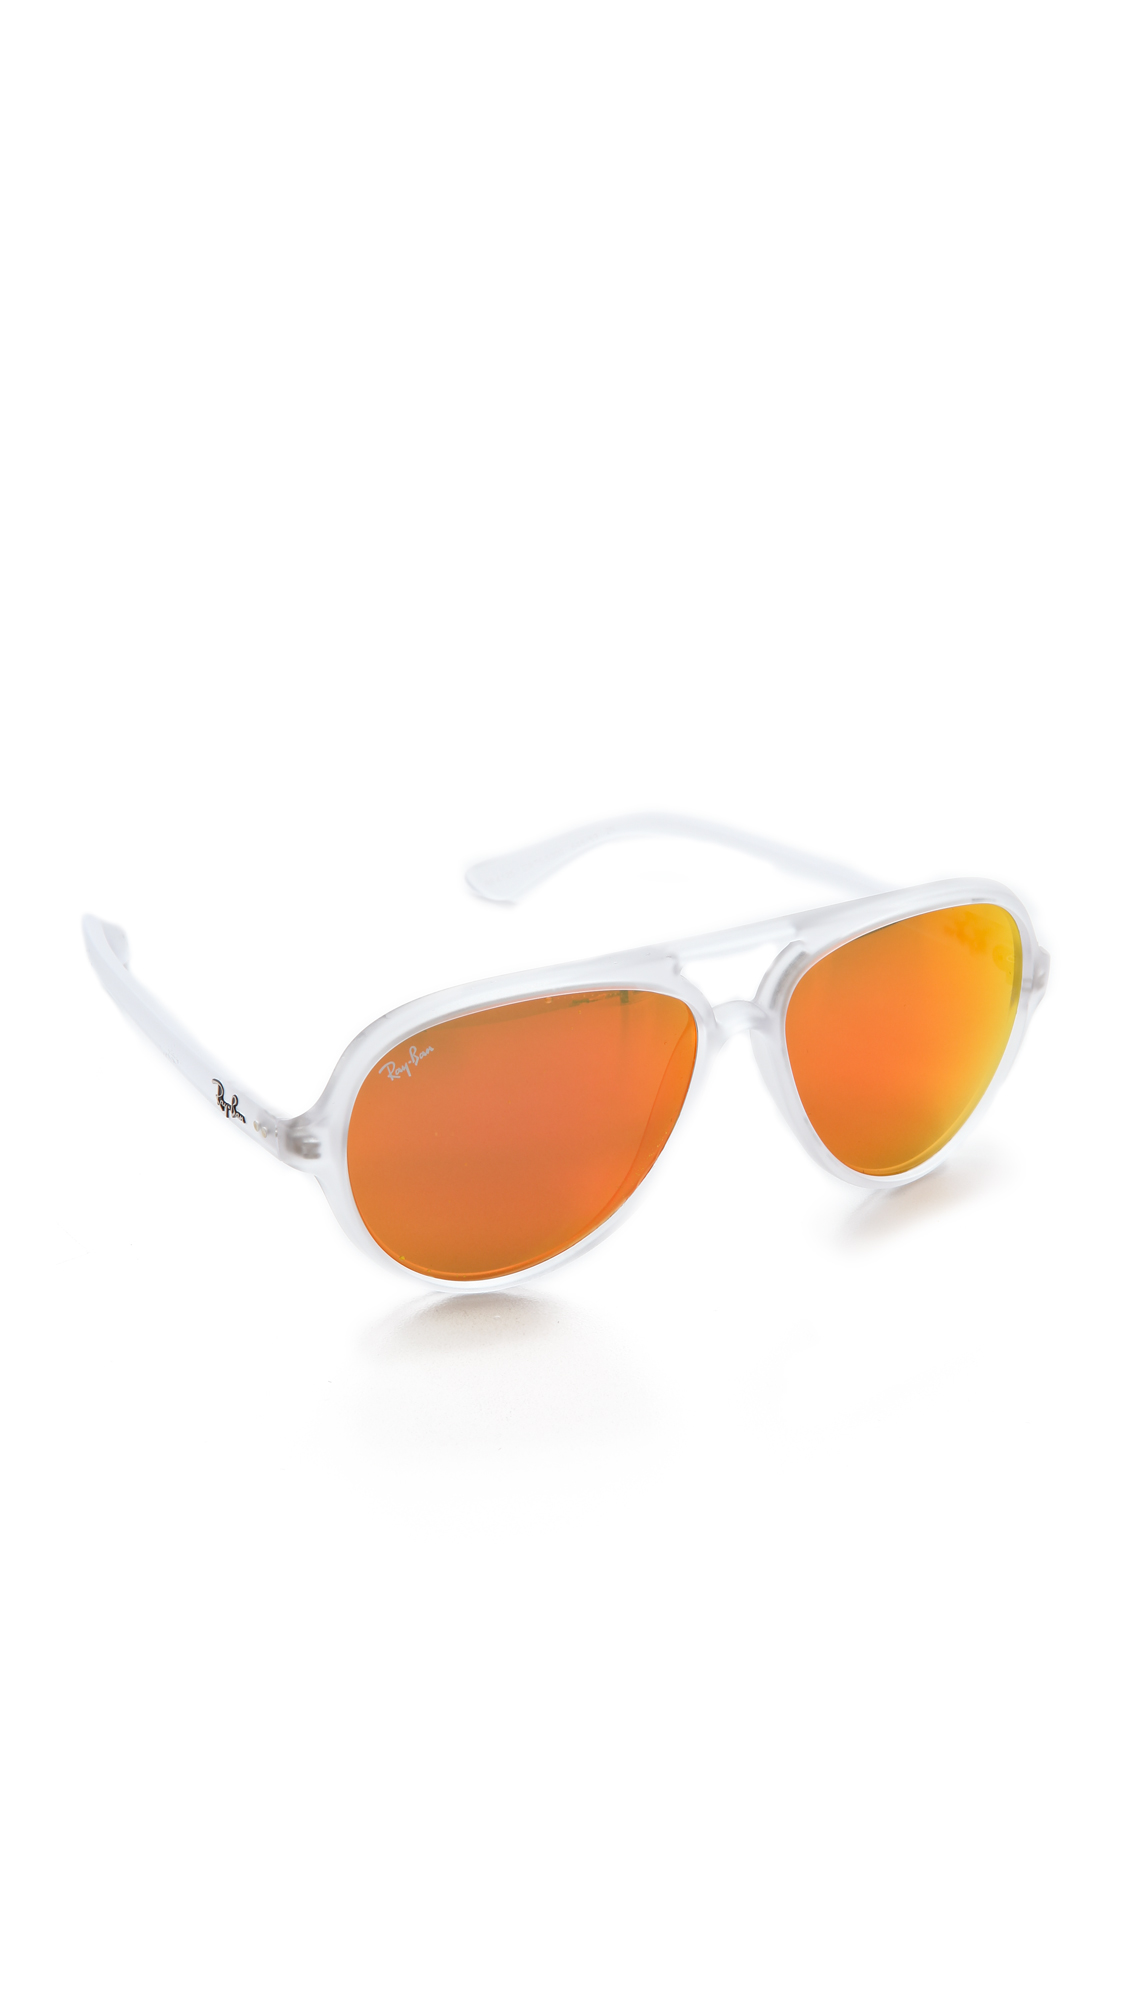 mirrored aviator sunglasses ray ban w45r  Gallery Previously sold at: Shopbop 路 Women's Mirrored Sunglasses